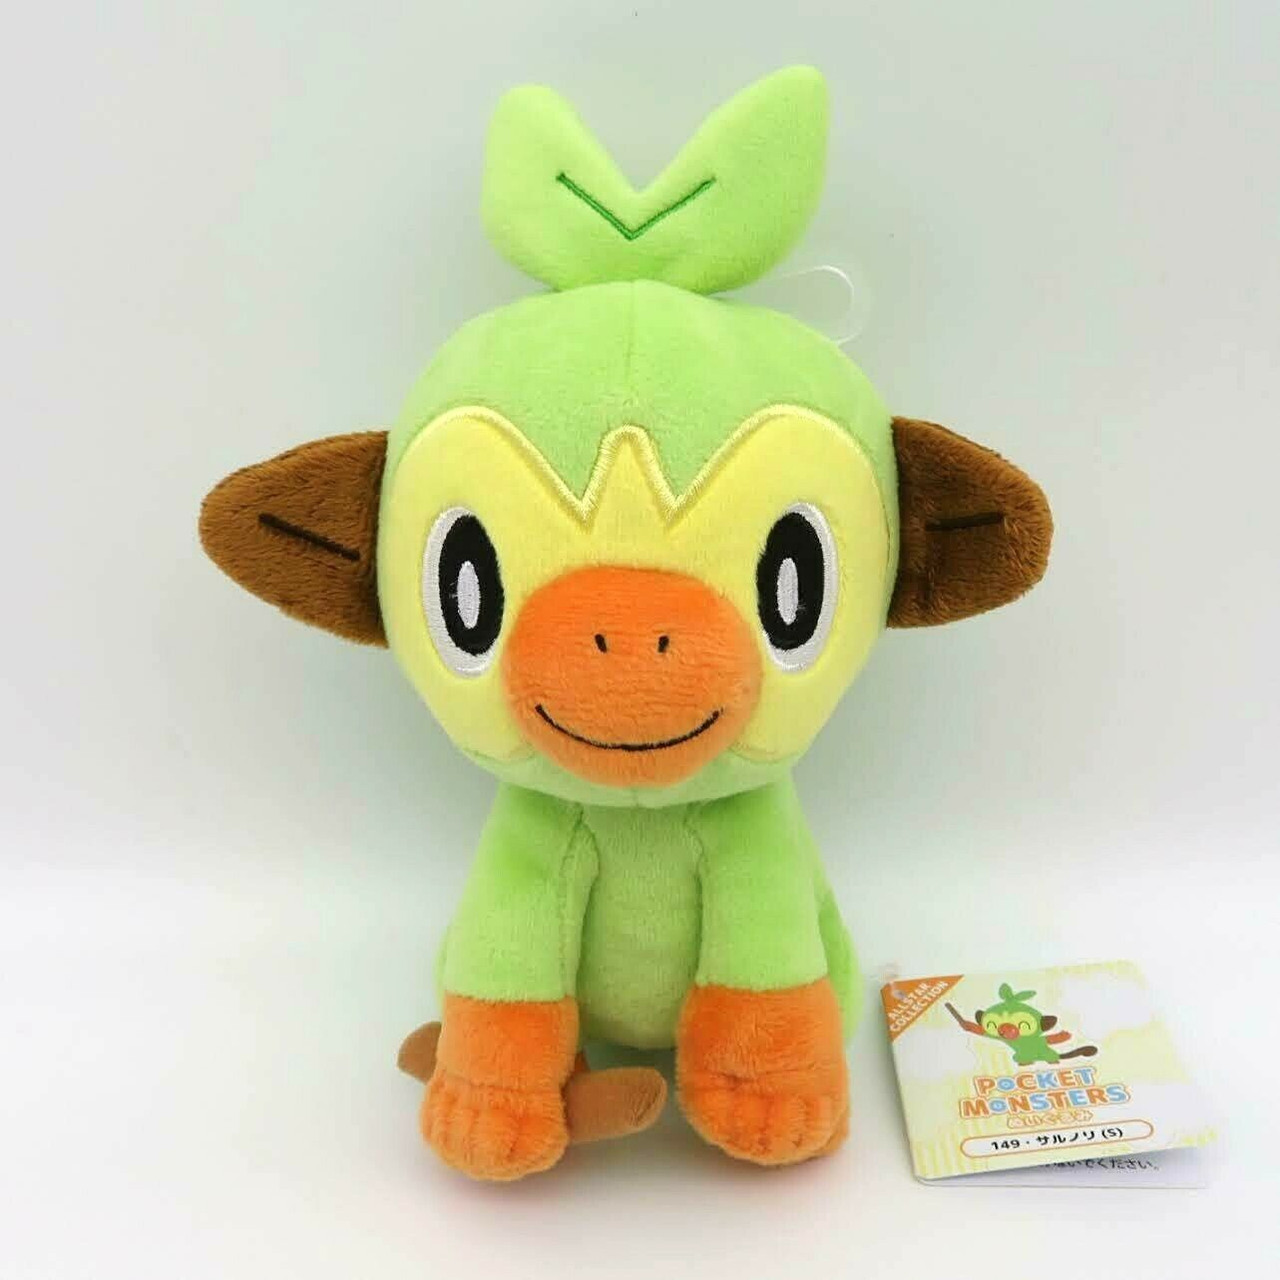 Grookey Plush Pokemon Toy 7 Tall Vsupply Anime Check out inspiring examples of grooky artwork on deviantart, and get inspired by our community of talented artists. grookey plush pokemon toy 7 tall